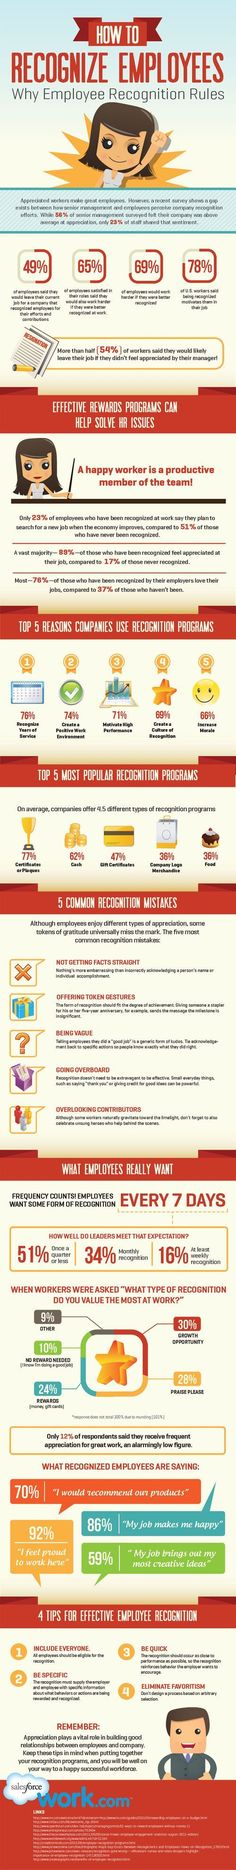 Pocket : How to Recognize Employees [INFOGRAPHIC]